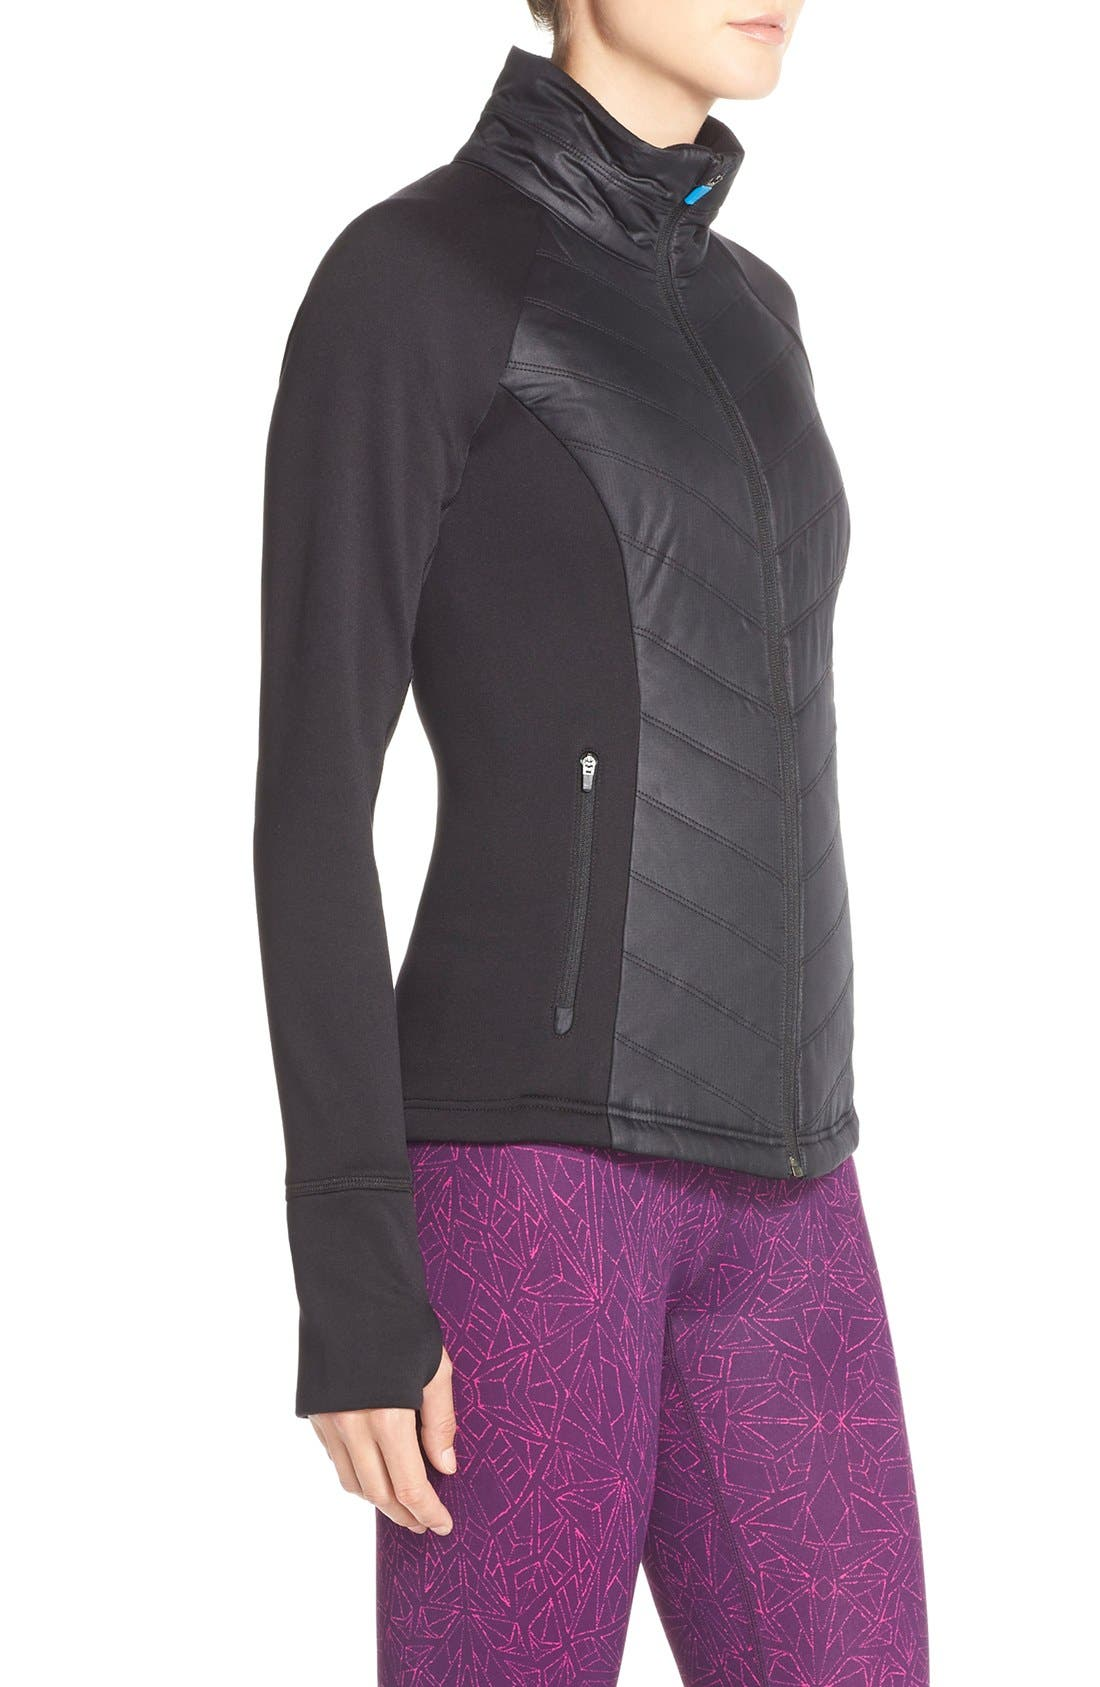 Zelfusion Reflective Quilted Jacket,                             Alternate thumbnail 12, color,                             001